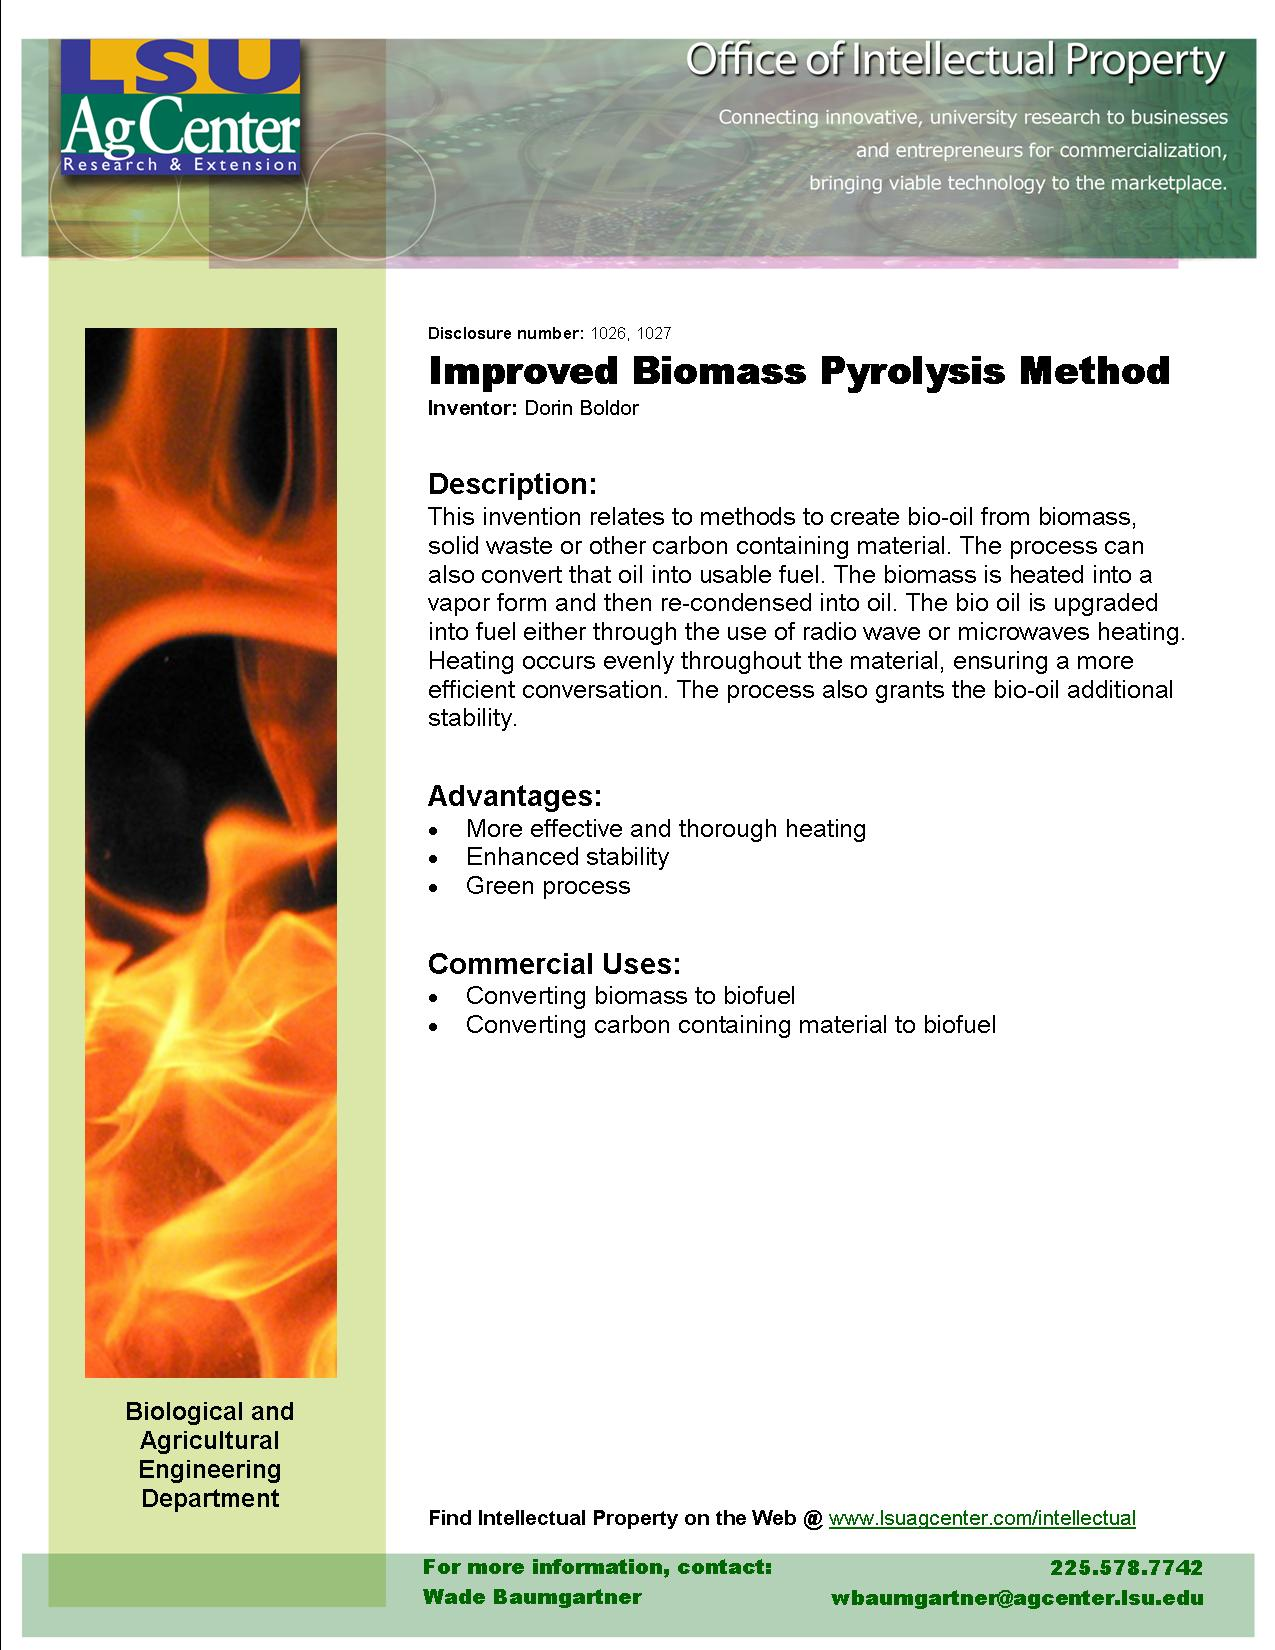 Improved Biomass Pyrolysis Method